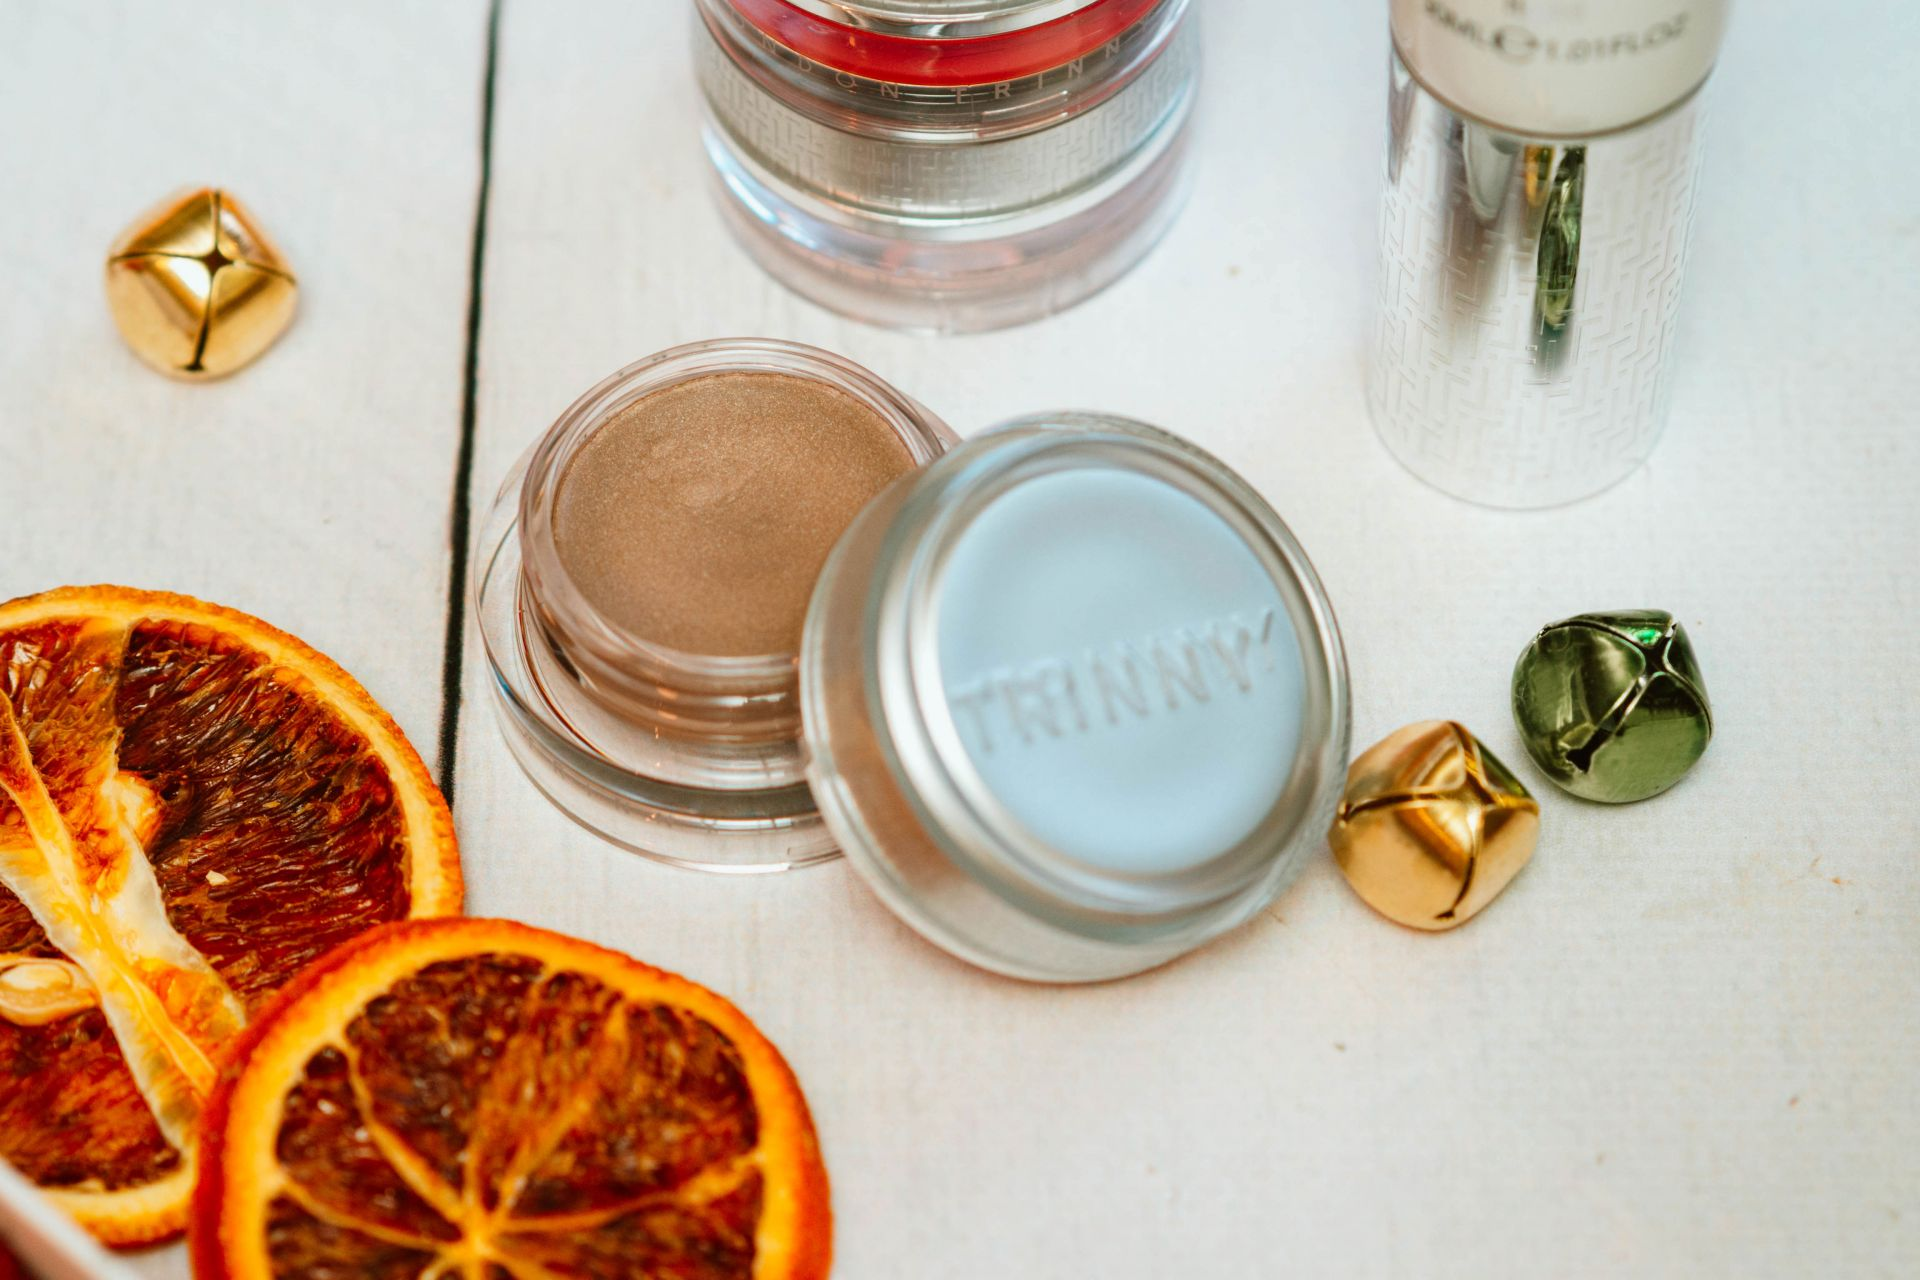 Trinny London The Starter Stack Review